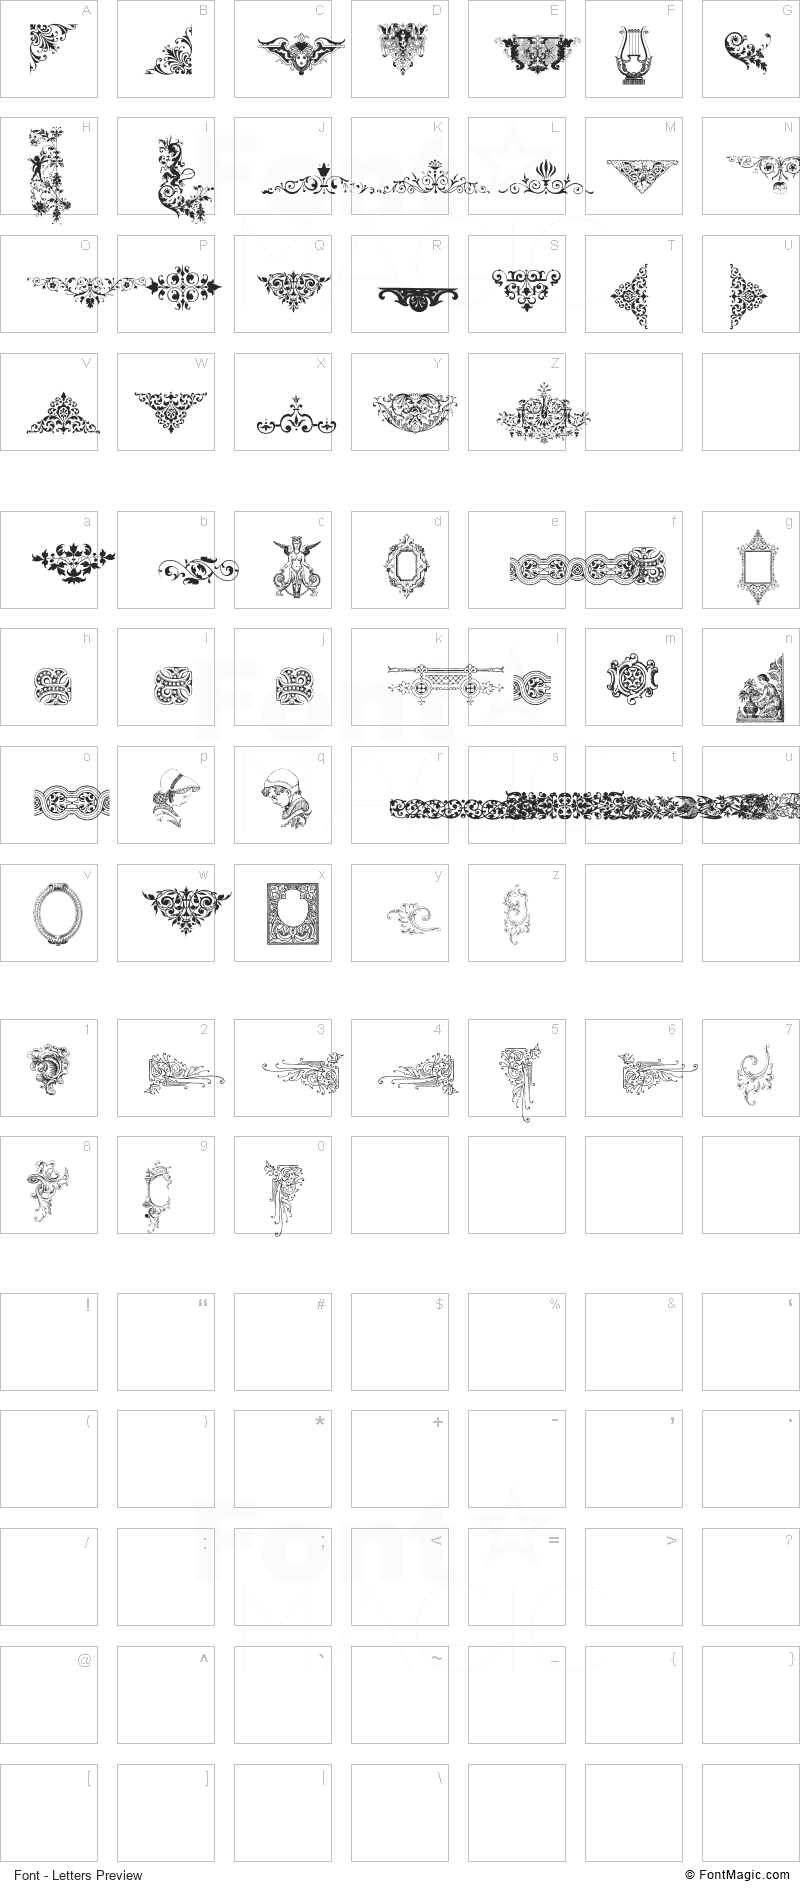 Victorian Free Ornaments Two Font - All Latters Preview Chart